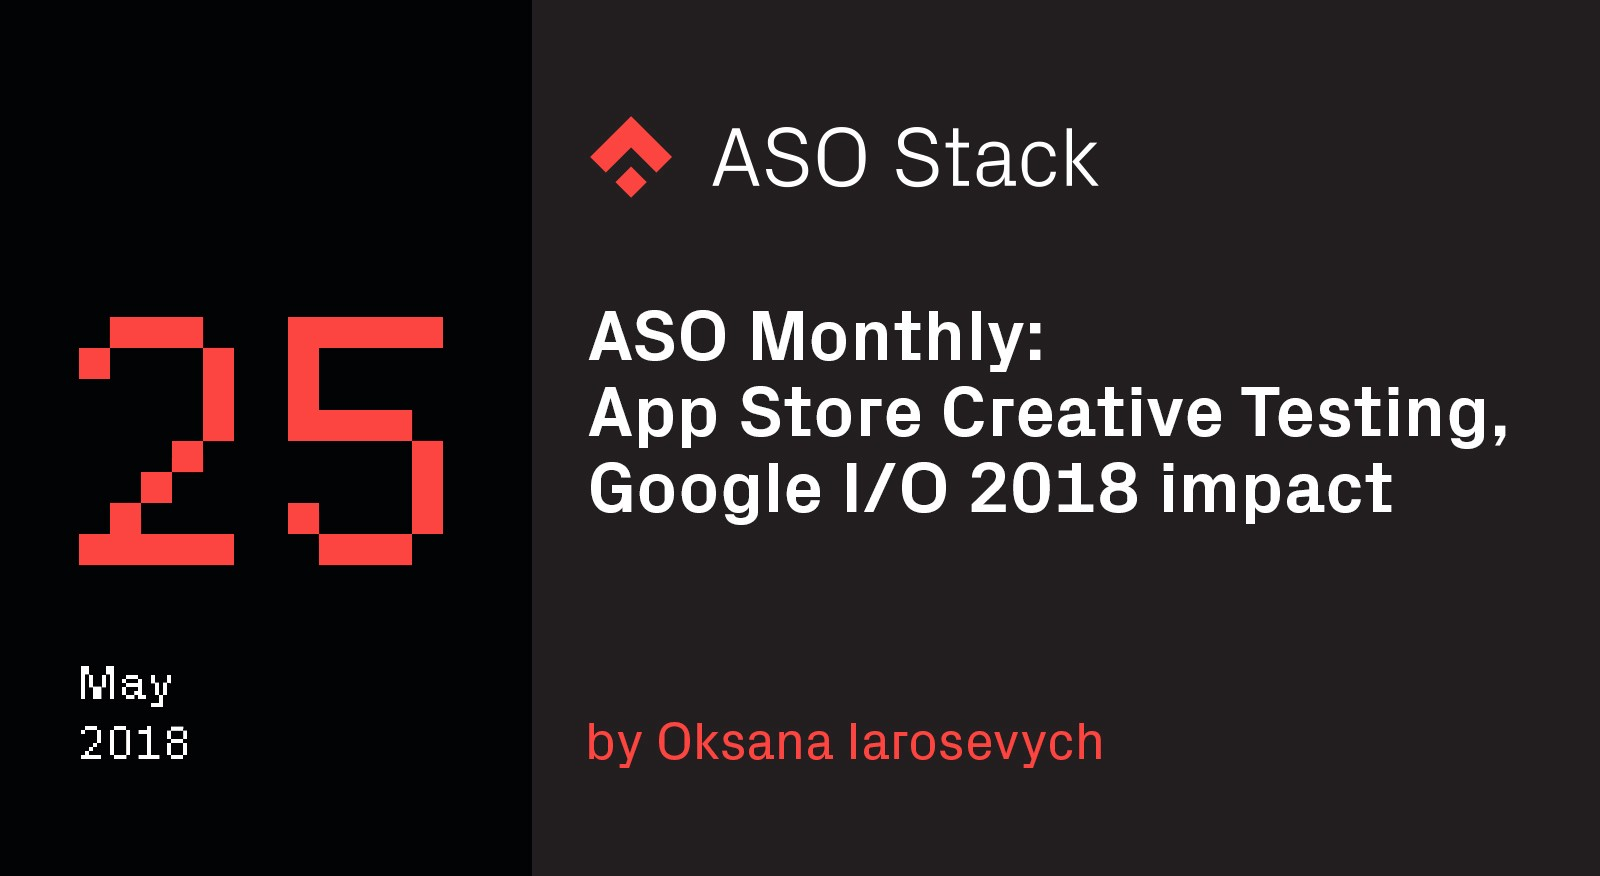 ASO Monthly #25 May 2018- App Store Creative Testing, Google I:O 2018 impact